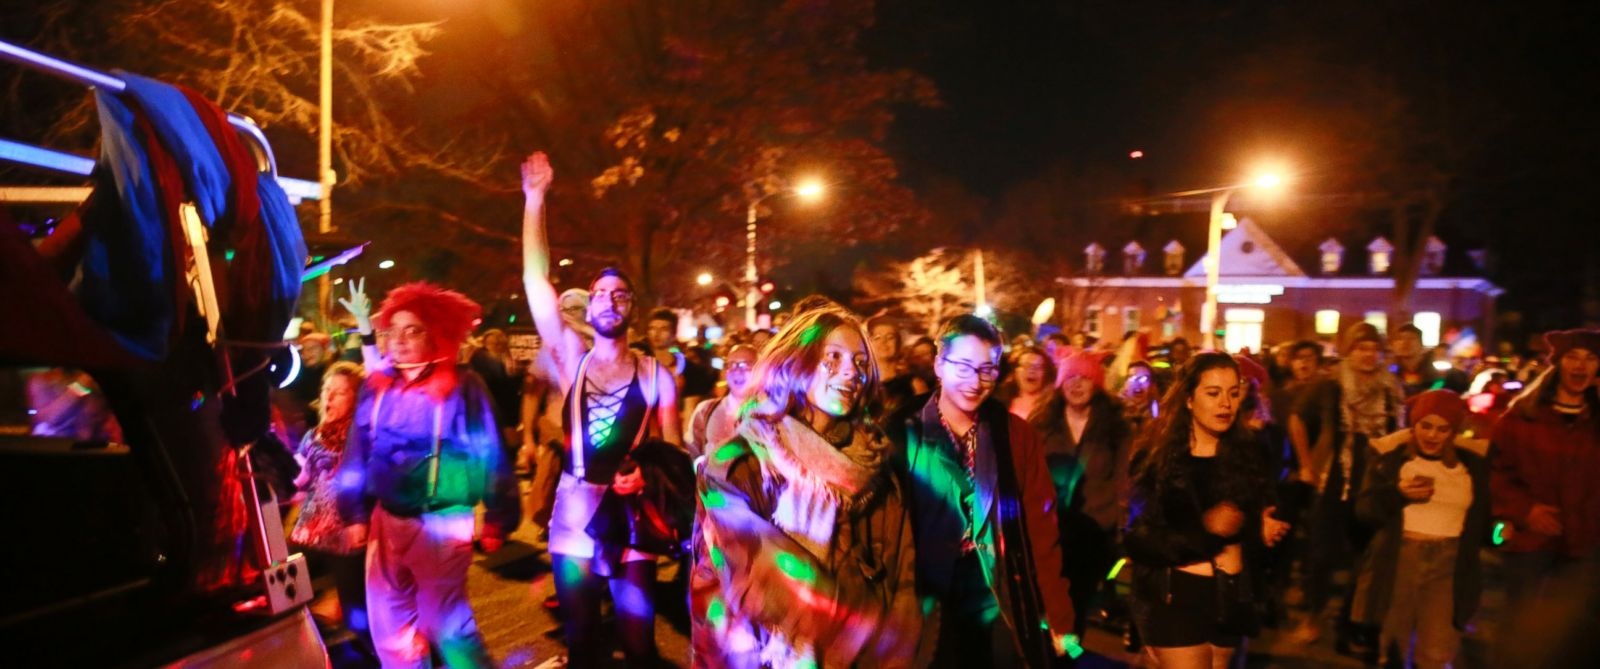 PHOTO: Members of the LGBT community and gay rights groups carried out a dance party near the home of Vice President-elect Mike Pence on Primrose Street two days before he is sworn in as Vice President, January 18, 2017 in Chevy Chase, Maryland.